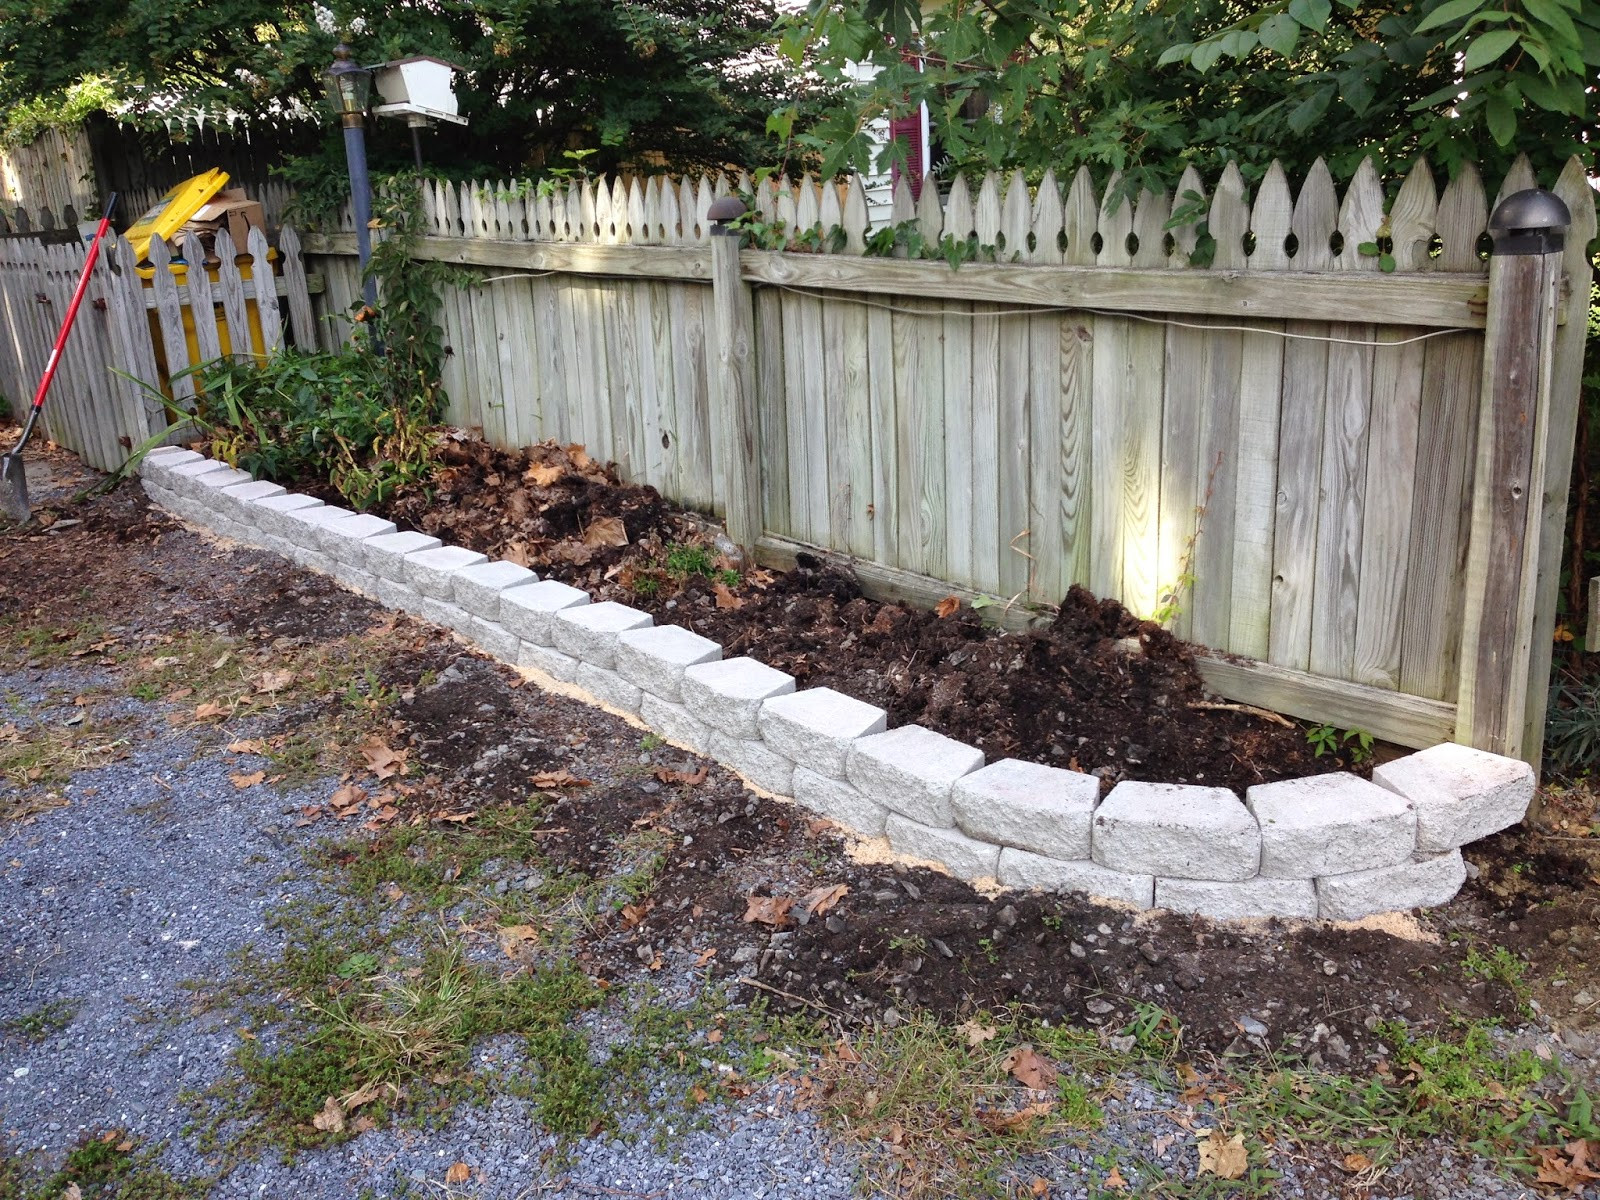 Best ideas about DIY Flower Bed Borders . Save or Pin Pine Whiff House DIY Curb Appeal with a Quick Flower Bed Now.